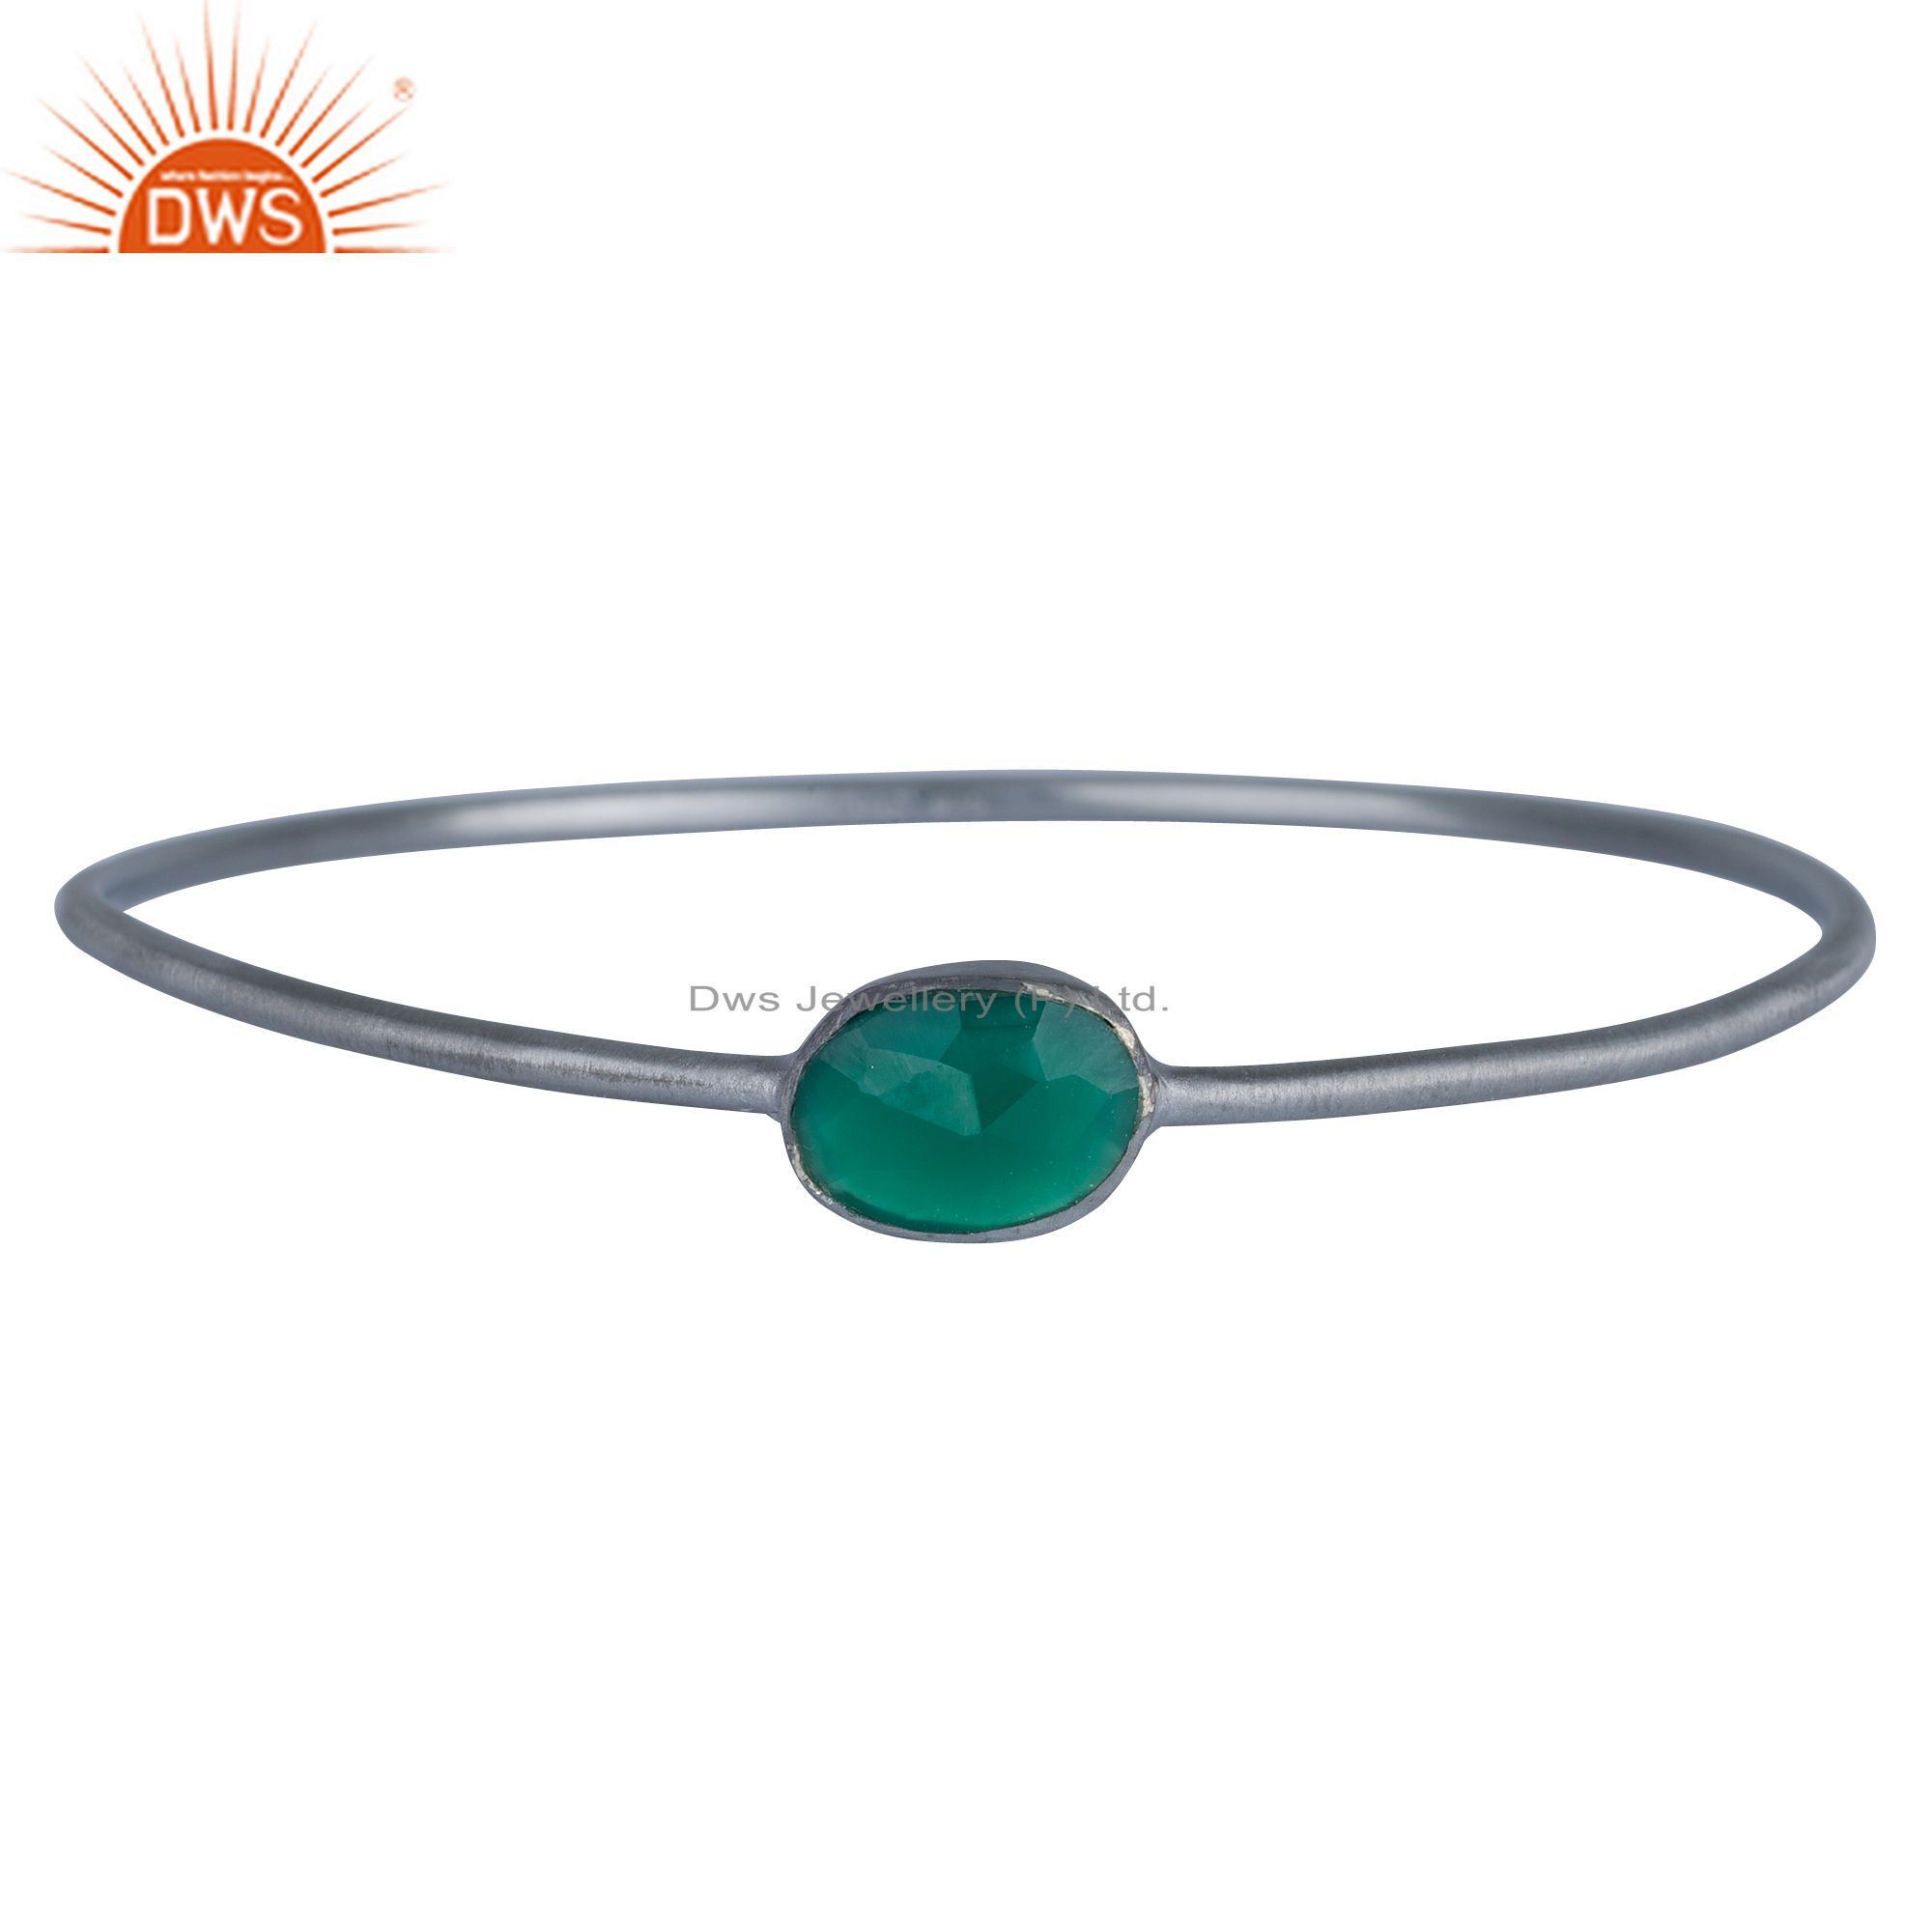 Handmade Sterling Silver With Oxidized Green Onyx Gemstone Stackable Bangle